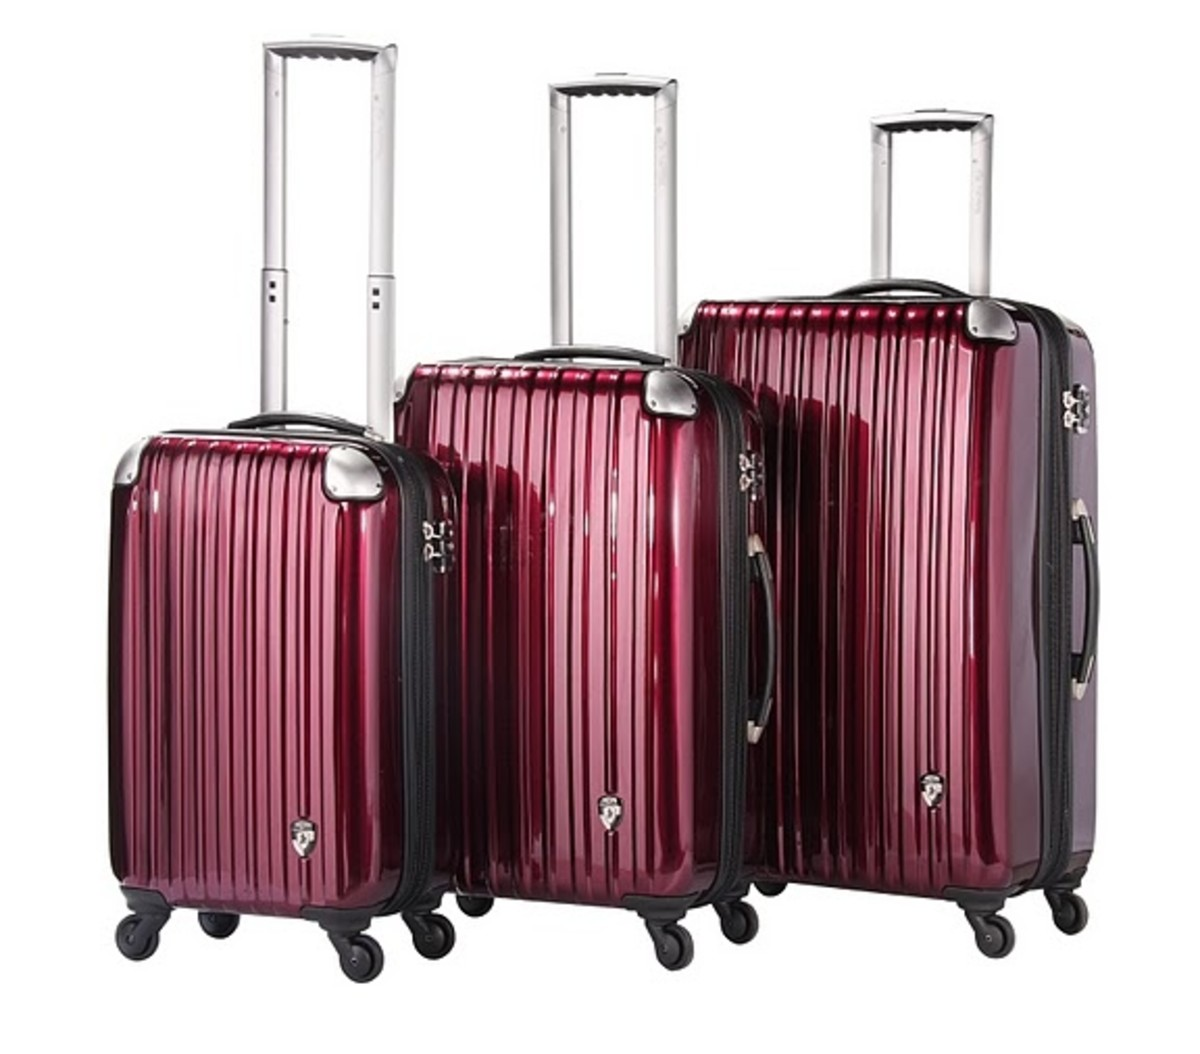 Heys Velocity Collection in Metallic Ruby Red http://www.airlineintl.com/catalog/velocity-collection-by-heys-usa